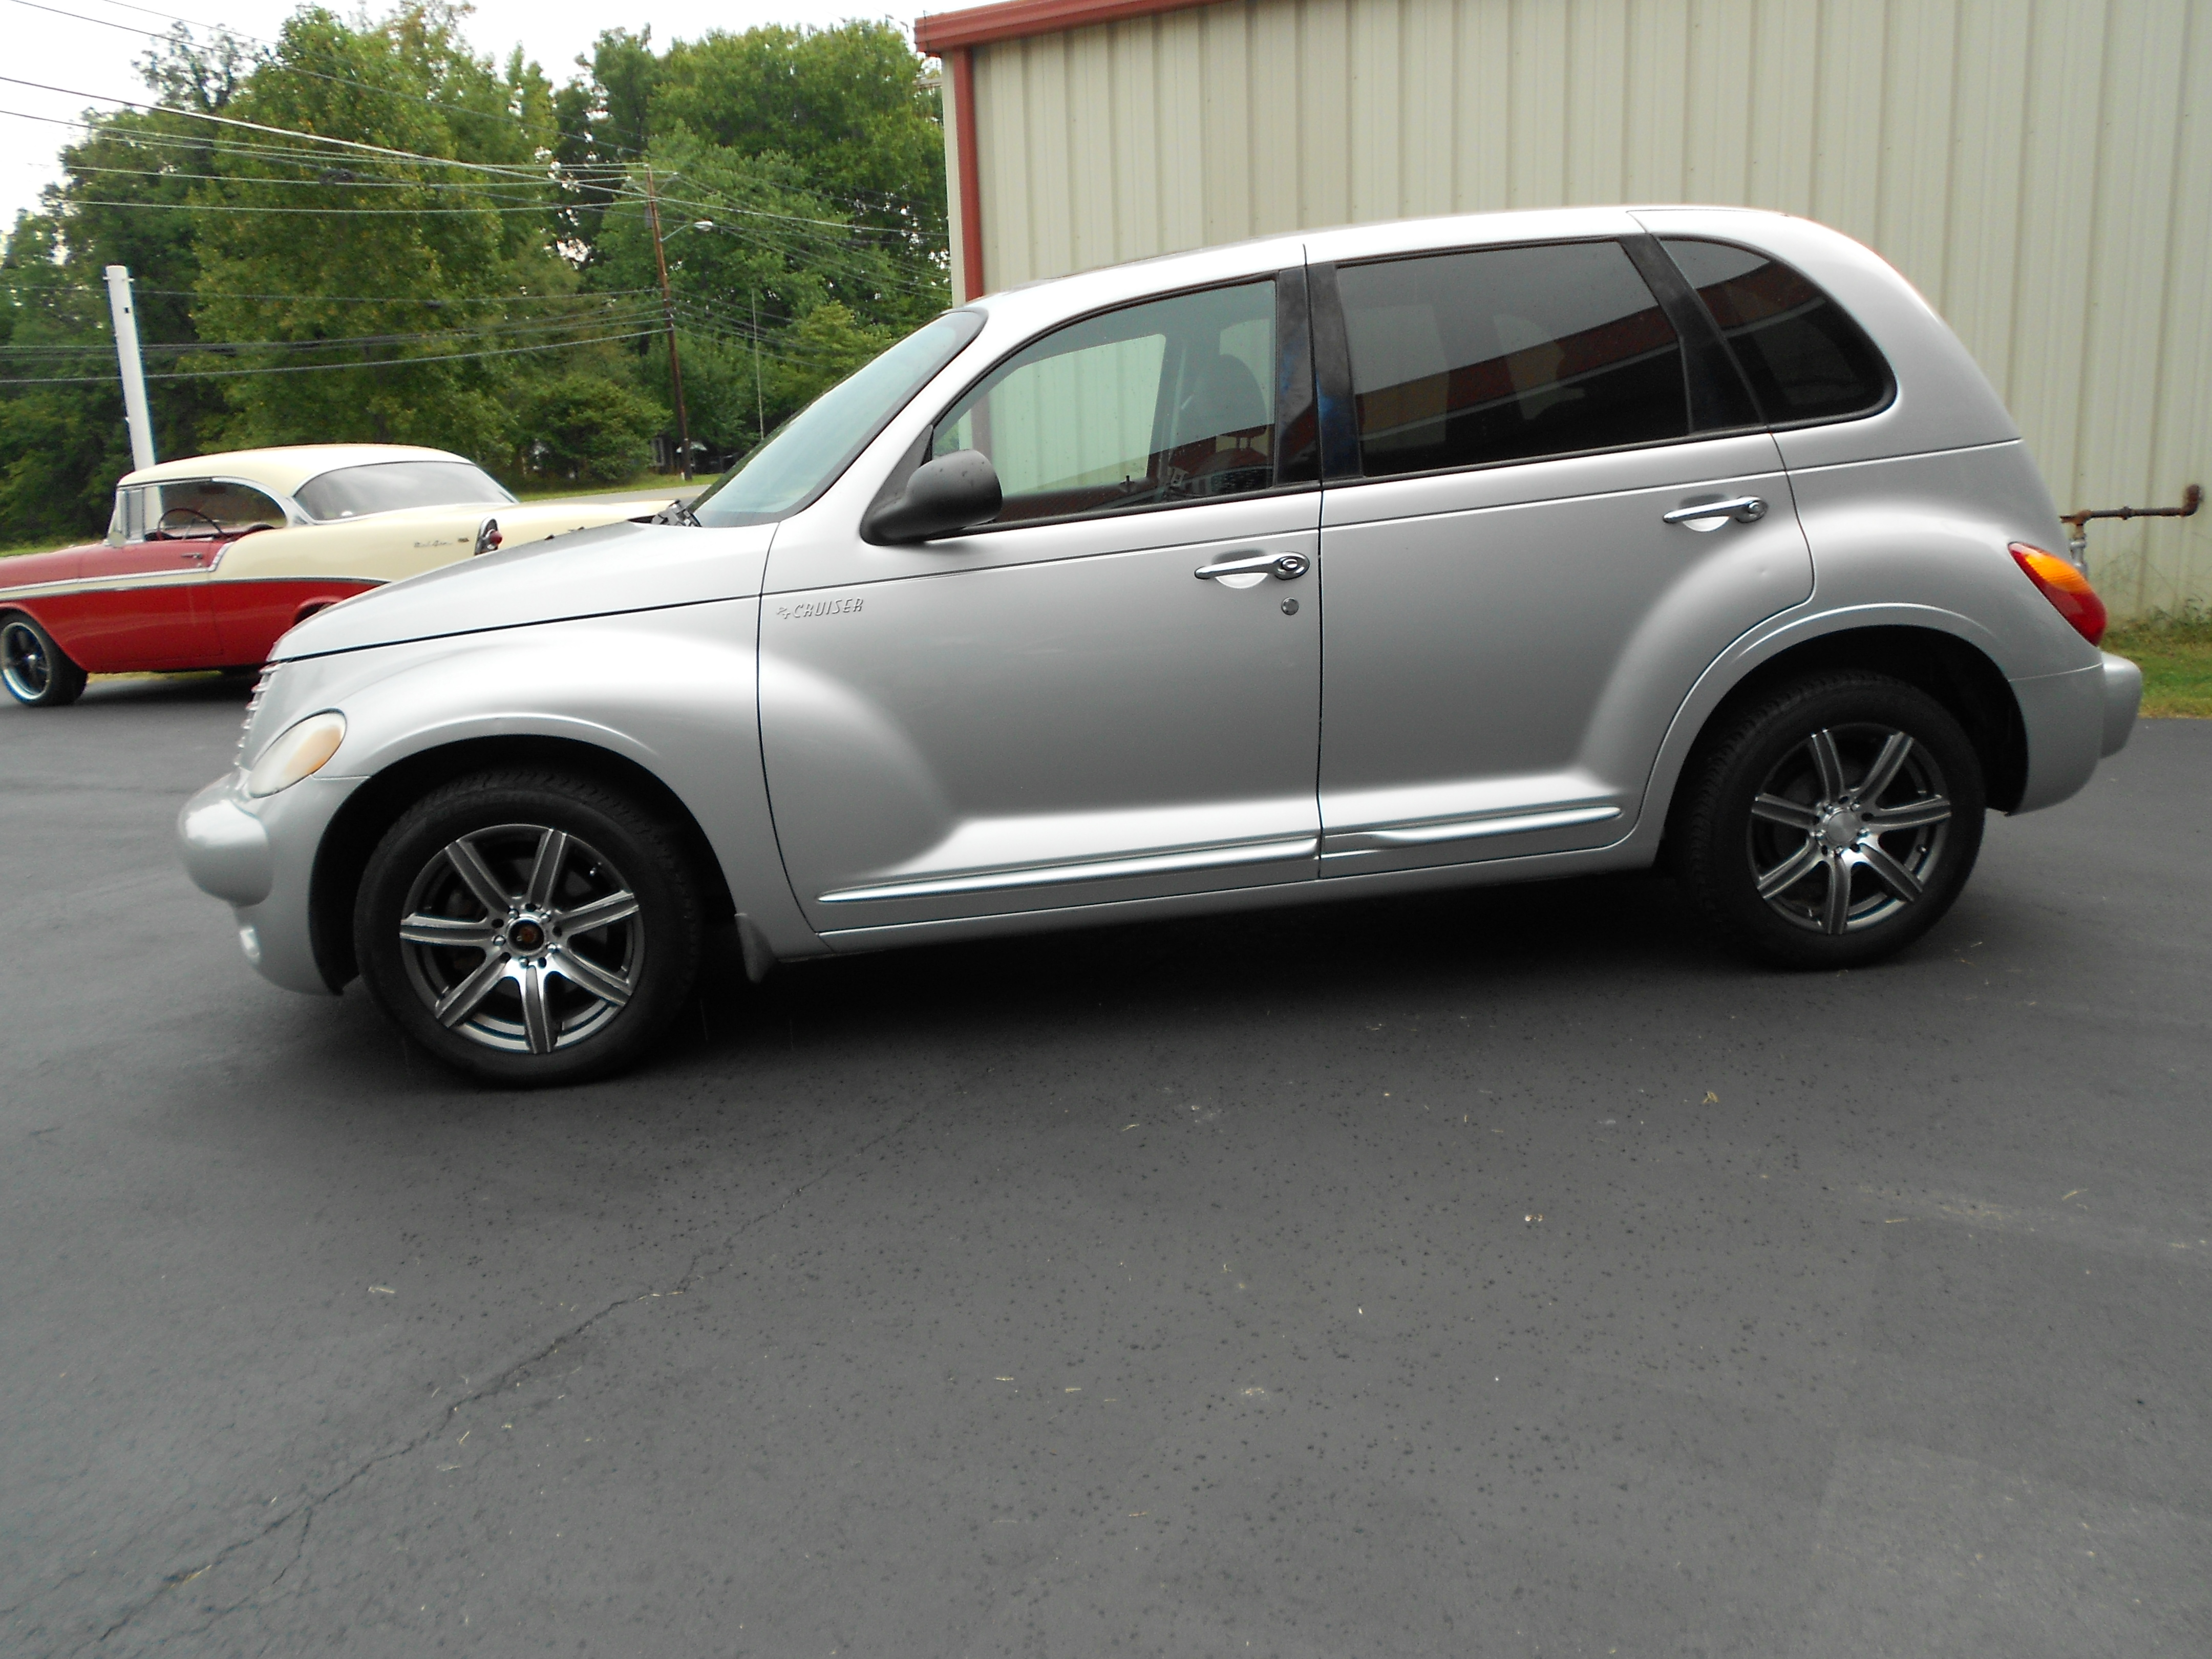 2005 Chrysler Pt Cruiser #20